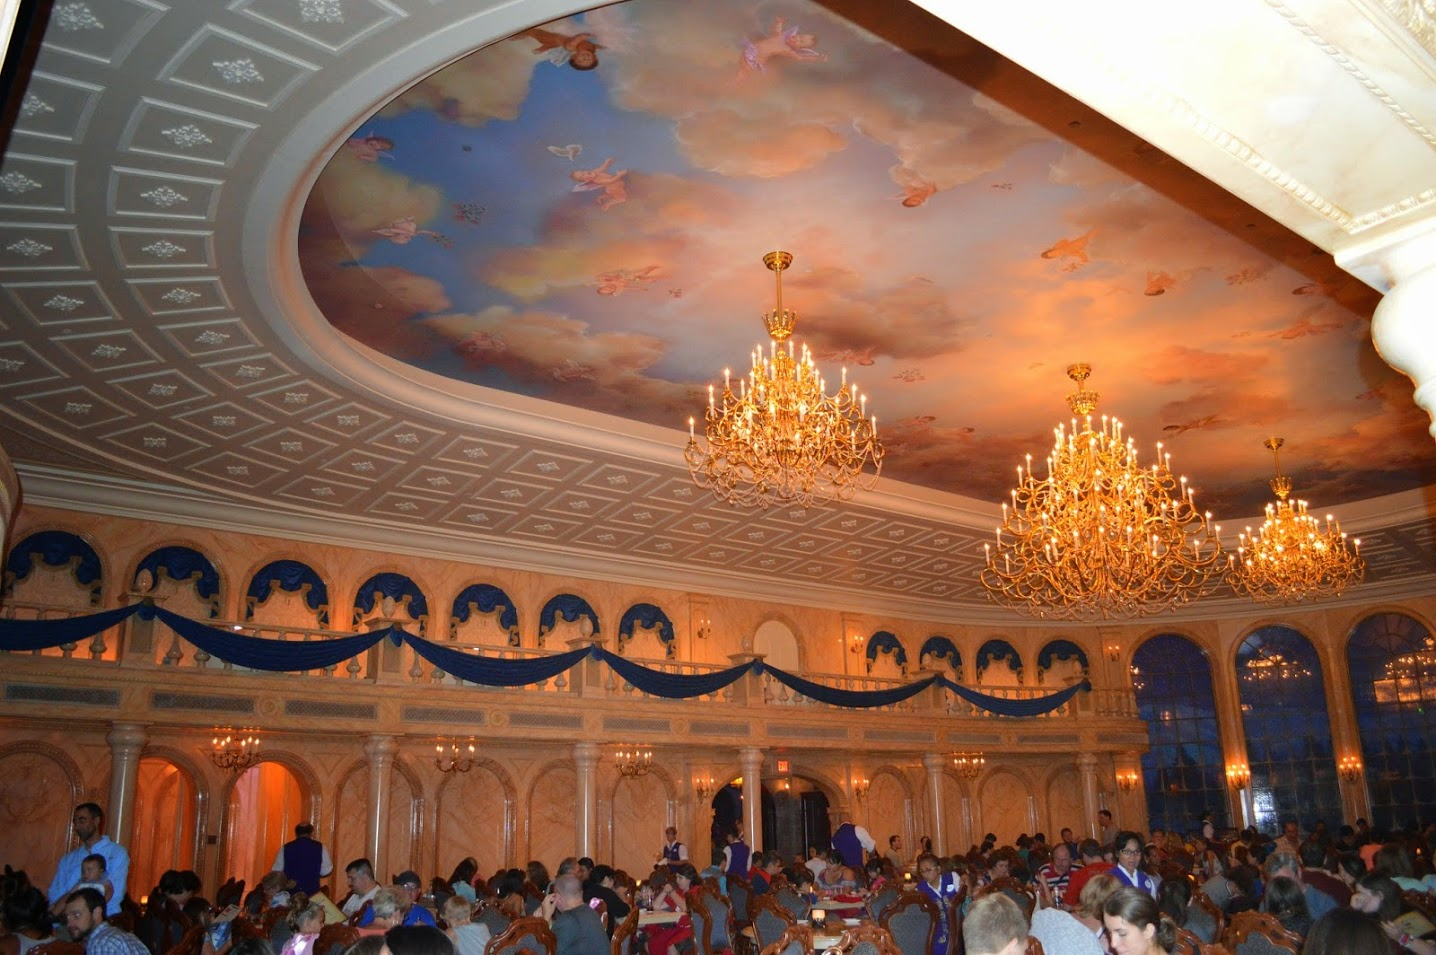 Top 10 Romantic Restaurants At Walt Disney World For Valentine S Day